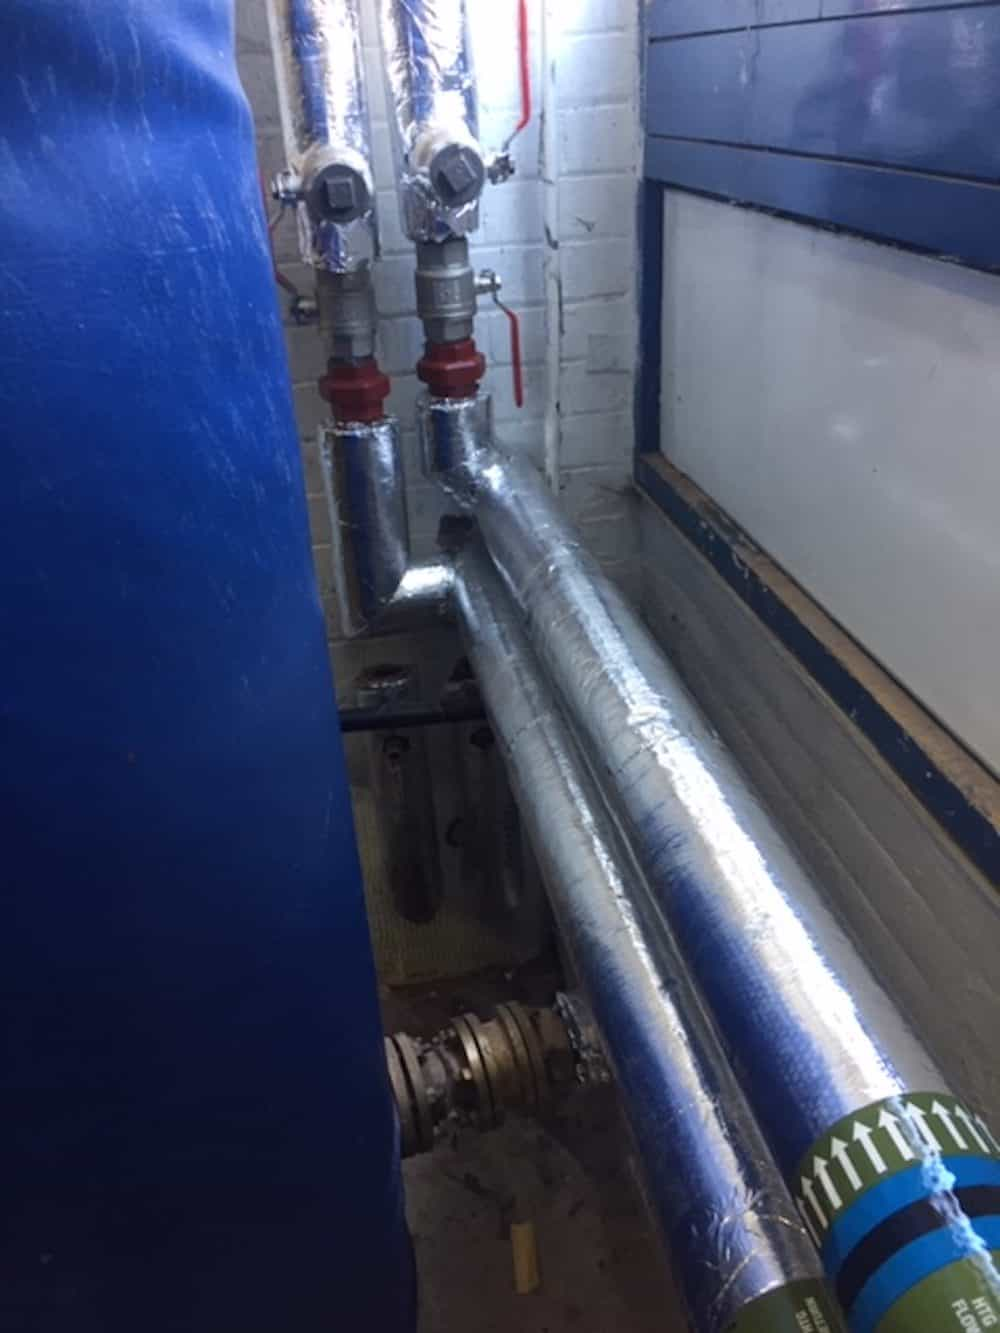 Finished pipework insulated and ready to go - boiler room replacement